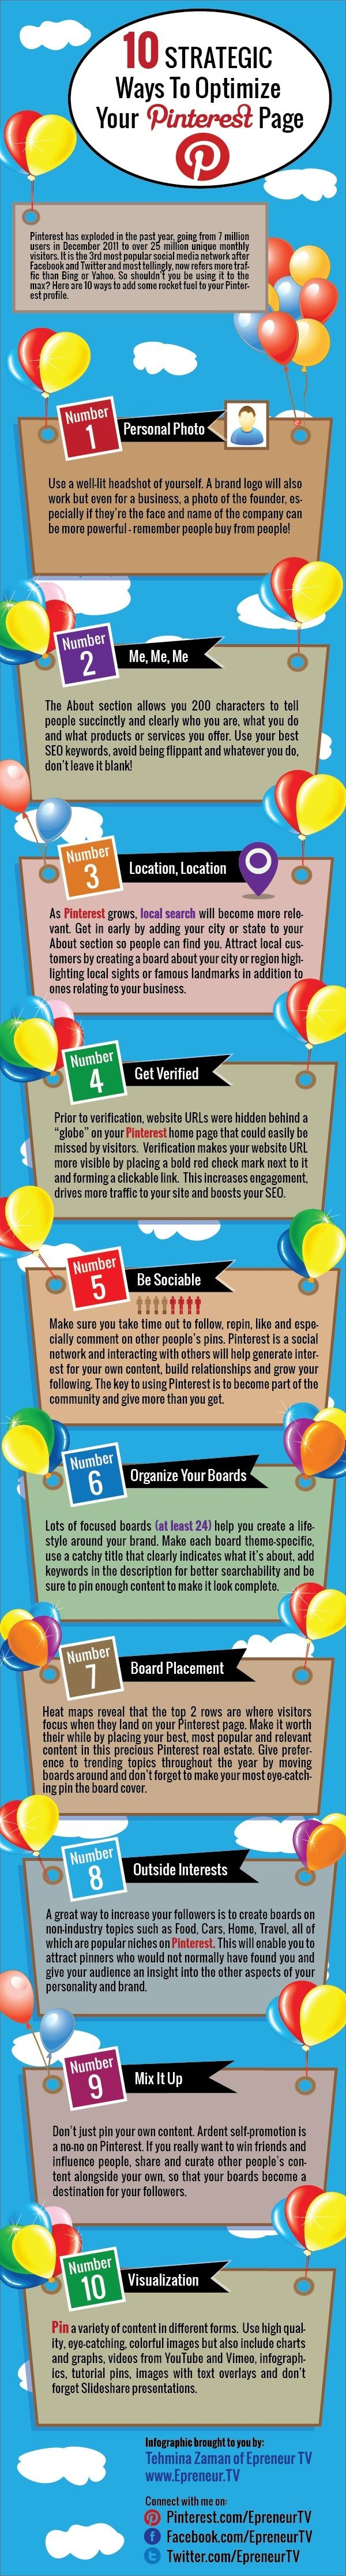 10 Strategic Ways to Optimize Your Pinterest Page - Following these quick tips…